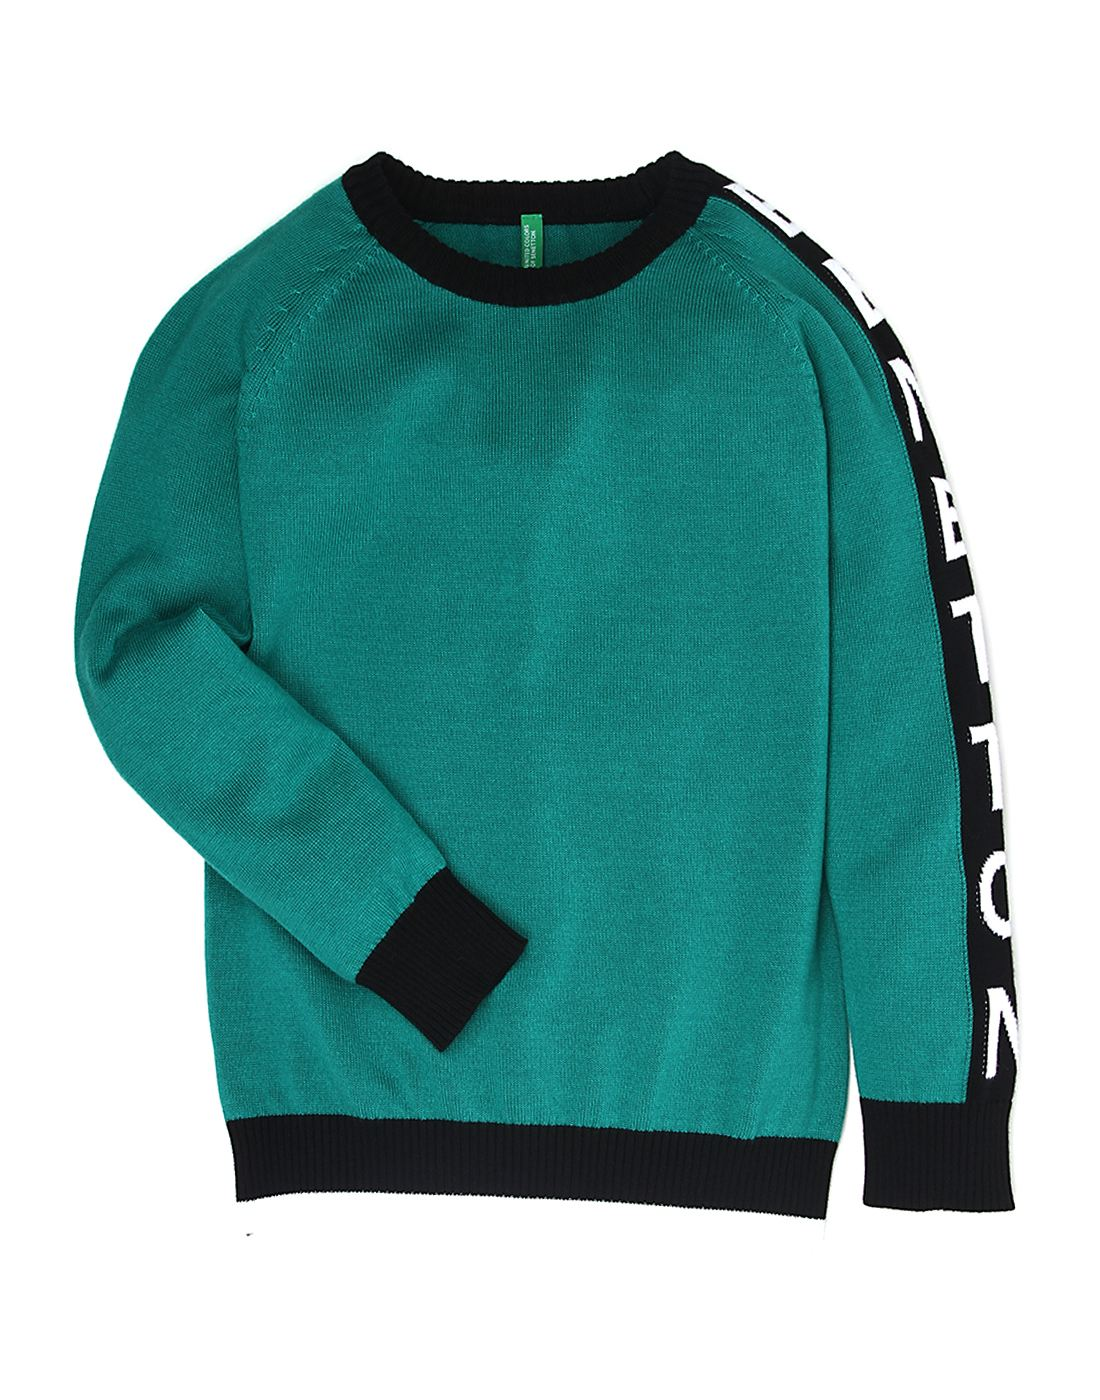 United Colors Of Benetton Boys Green Sweater